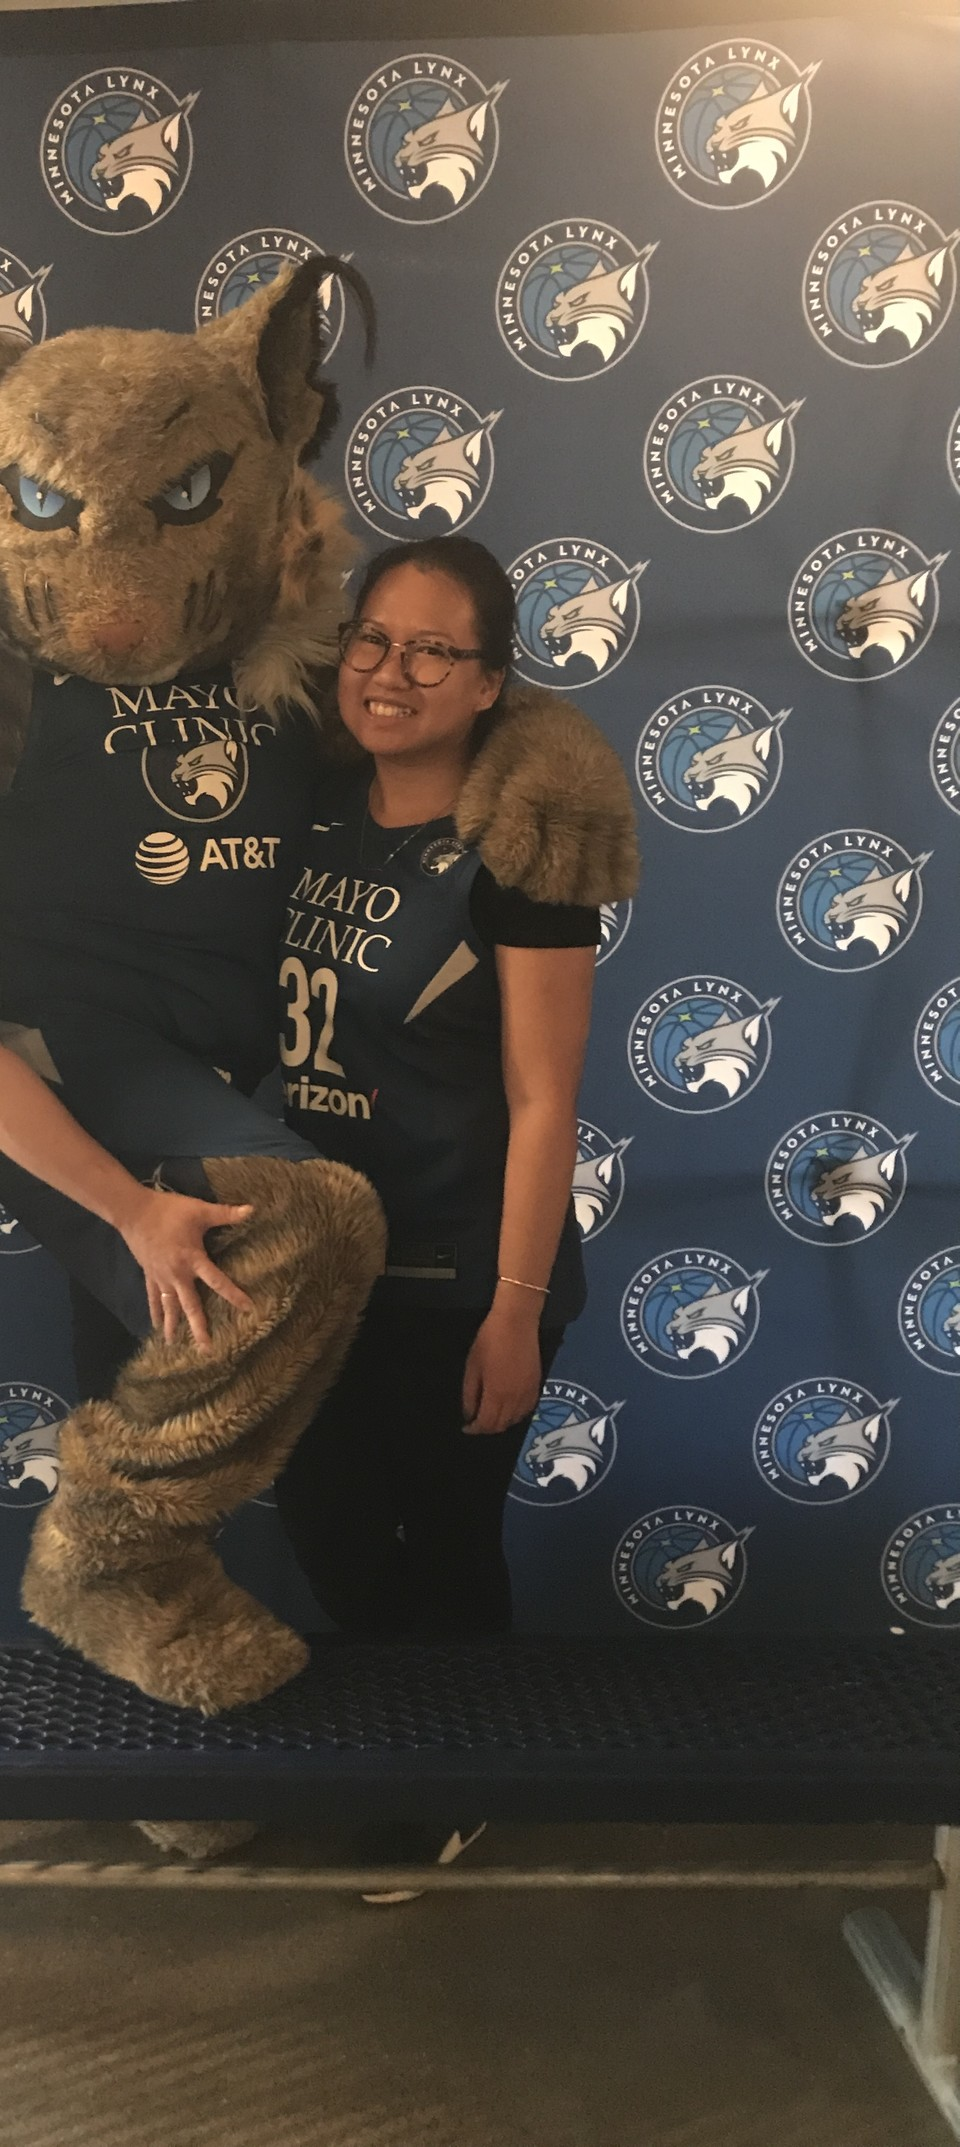 A fox mascot wearing a Mayo Clinic shirt with its arm around a smiling Asian woman.